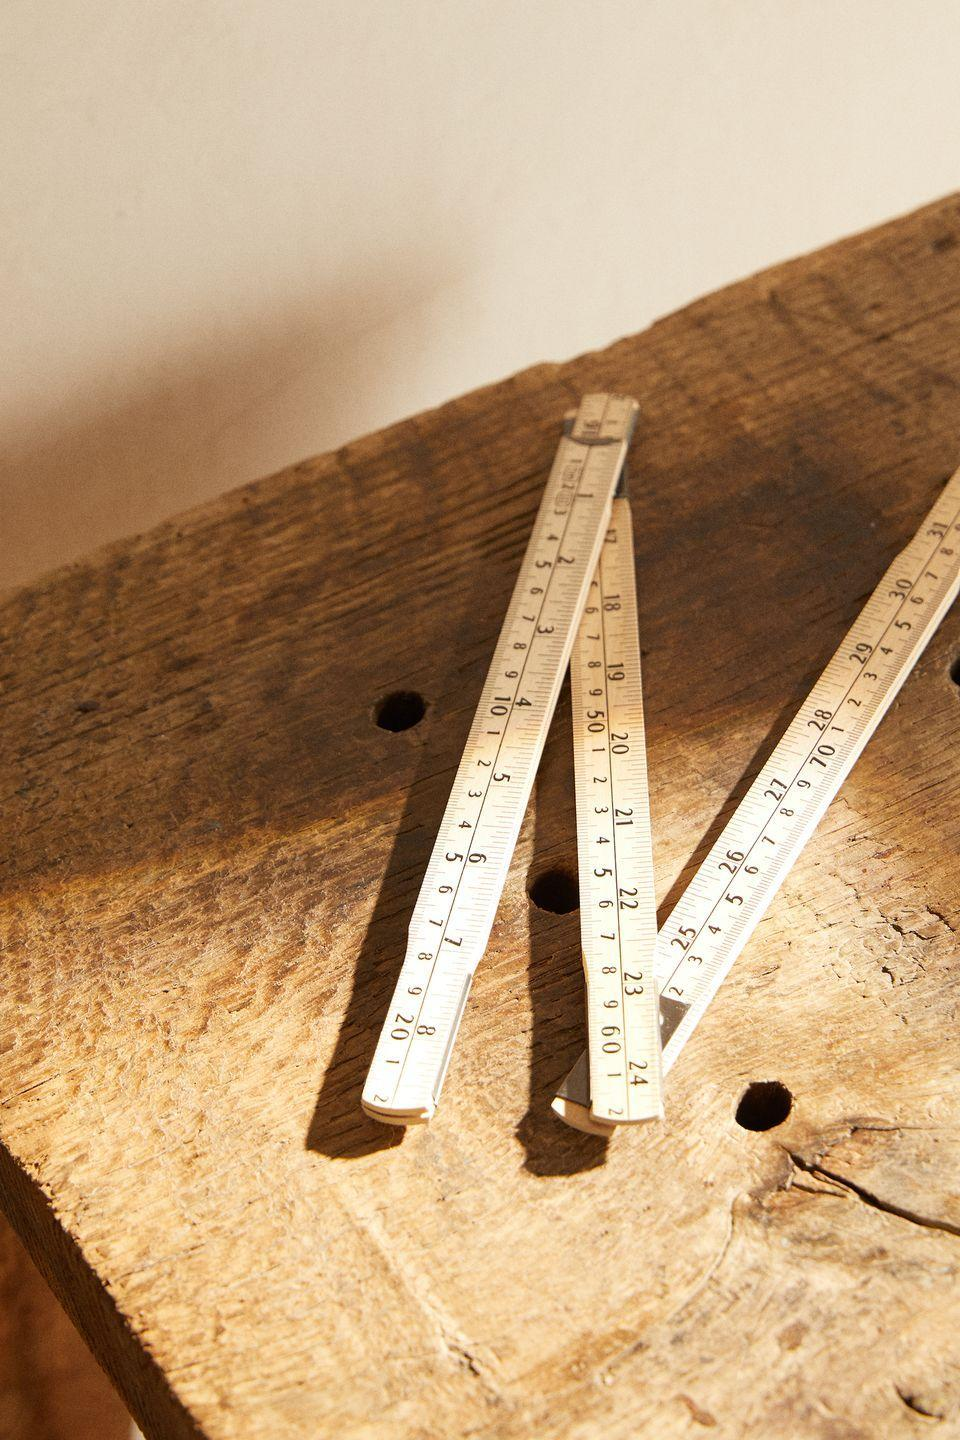 """<p>Measuring up to one metre, this folding carpenter's ruler is made of wood with a metal frame.<strong><br><br>Follow House Beautiful on <a href=""""https://www.instagram.com/housebeautifuluk/"""" rel=""""nofollow noopener"""" target=""""_blank"""" data-ylk=""""slk:Instagram"""" class=""""link rapid-noclick-resp"""">Instagram</a>. </strong></p>"""